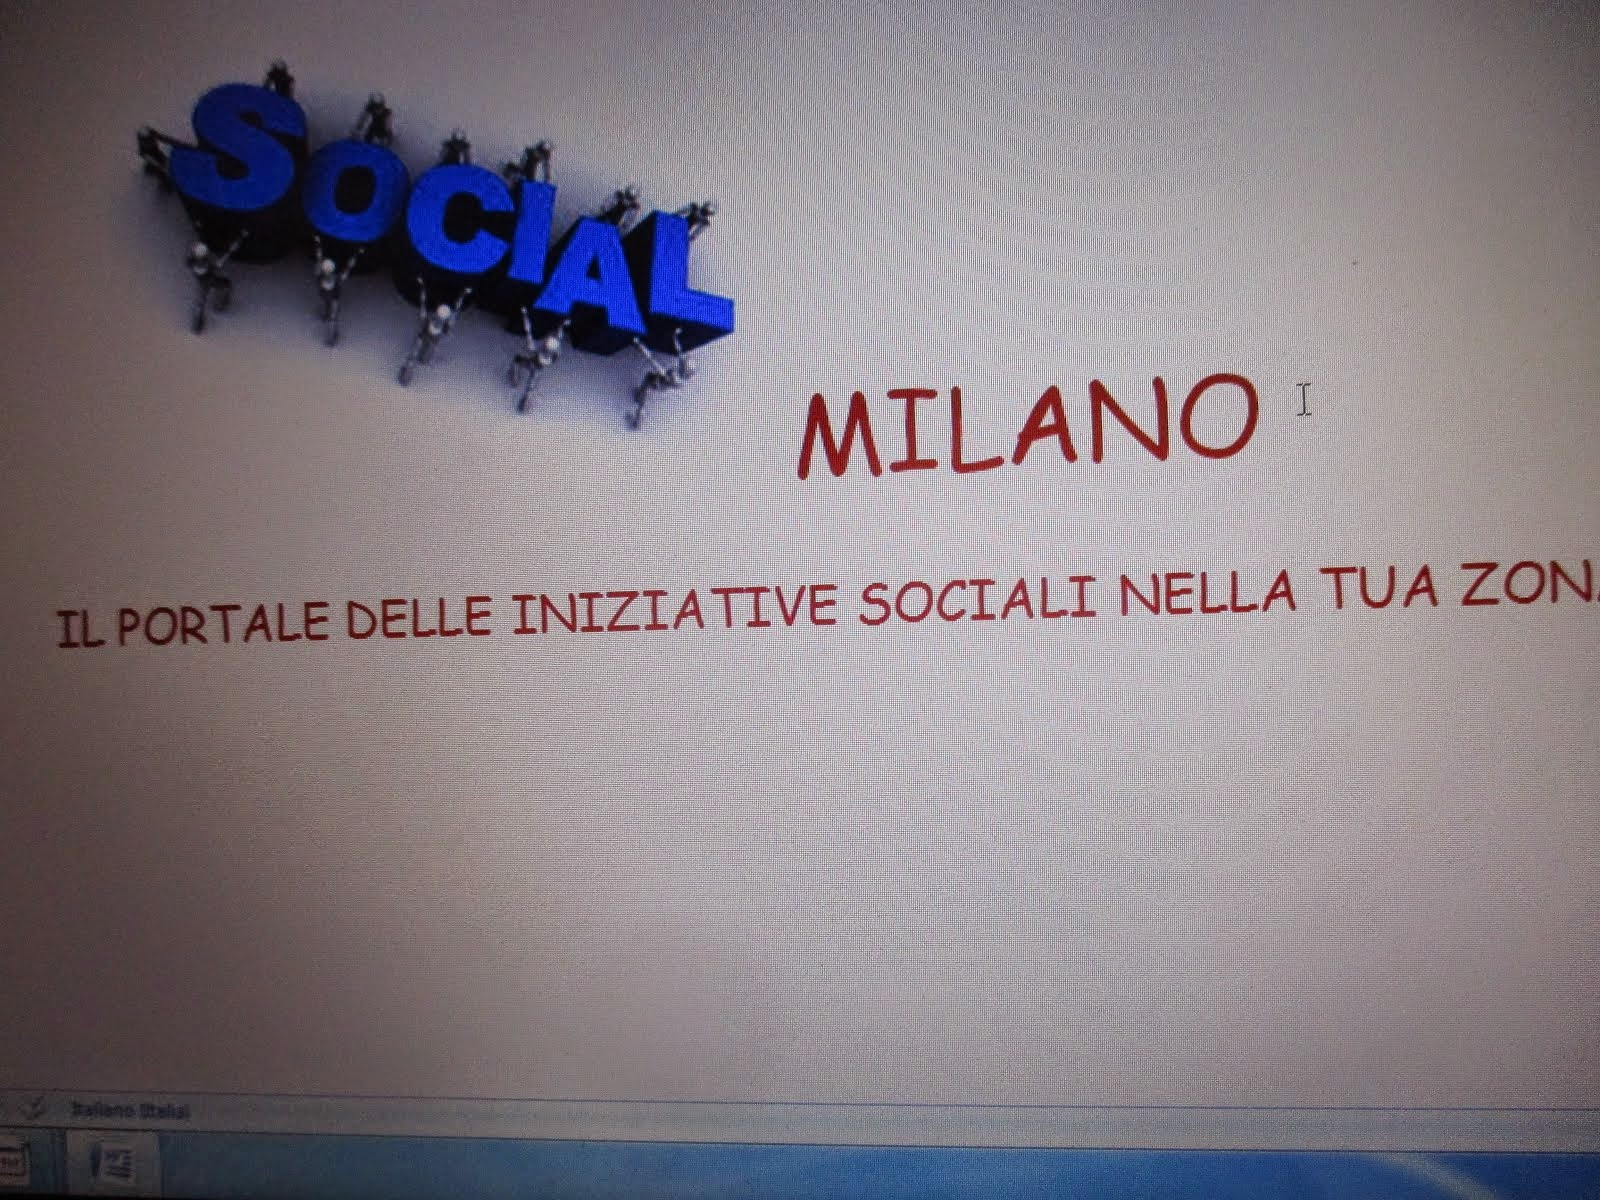 CLICK HERE UNDER SOCIAL MILANO